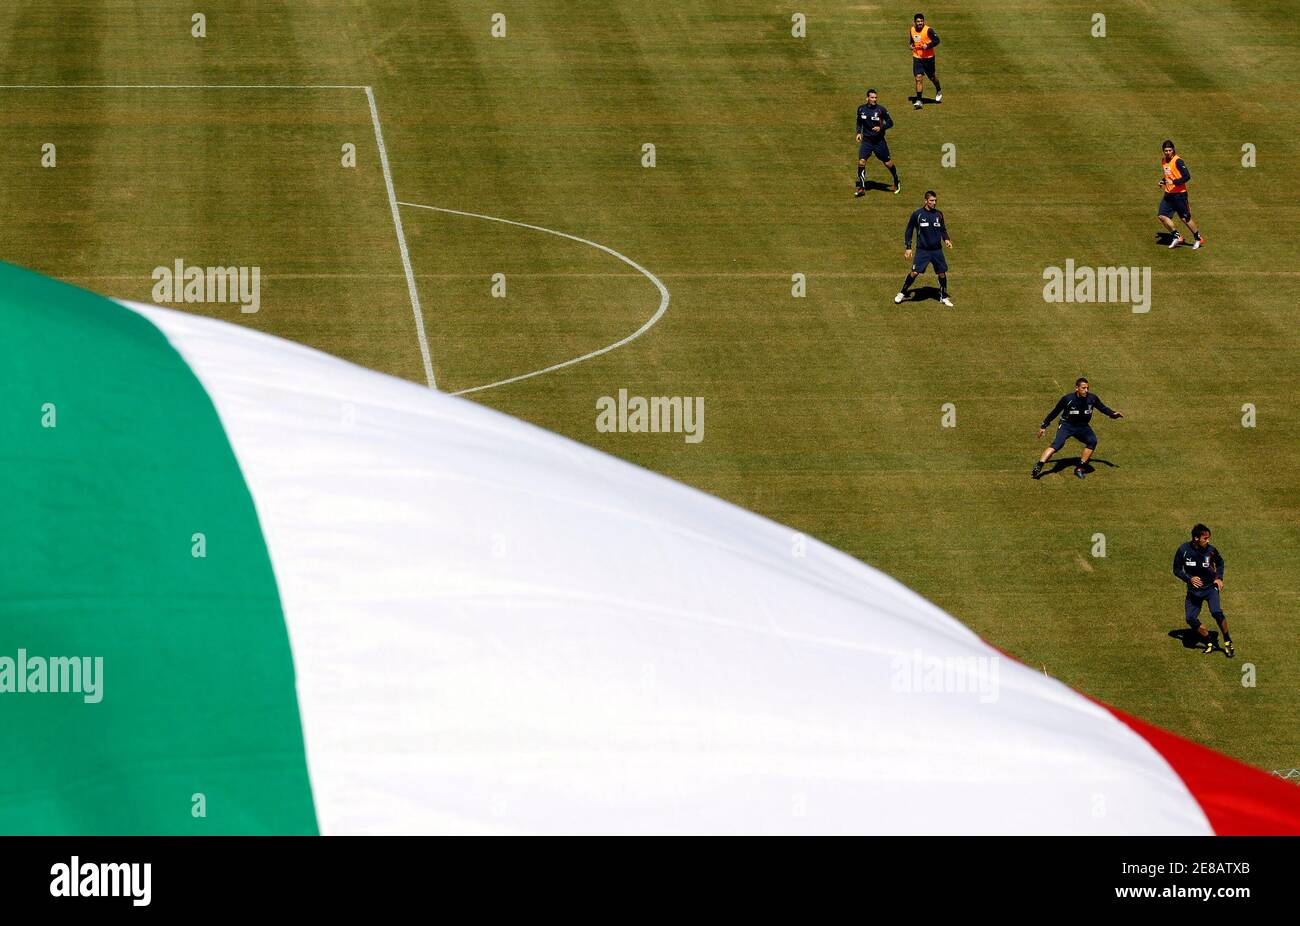 An Italian national flag flies as Italy's soccer players exercise during a morning training session in Sestriere May 24, 2010.           REUTERS/Alessandro Bianchi     (ITALY - Tags: SPORT SOCCER WORLD CUP IMAGES OF THE DAY) Stock Photo